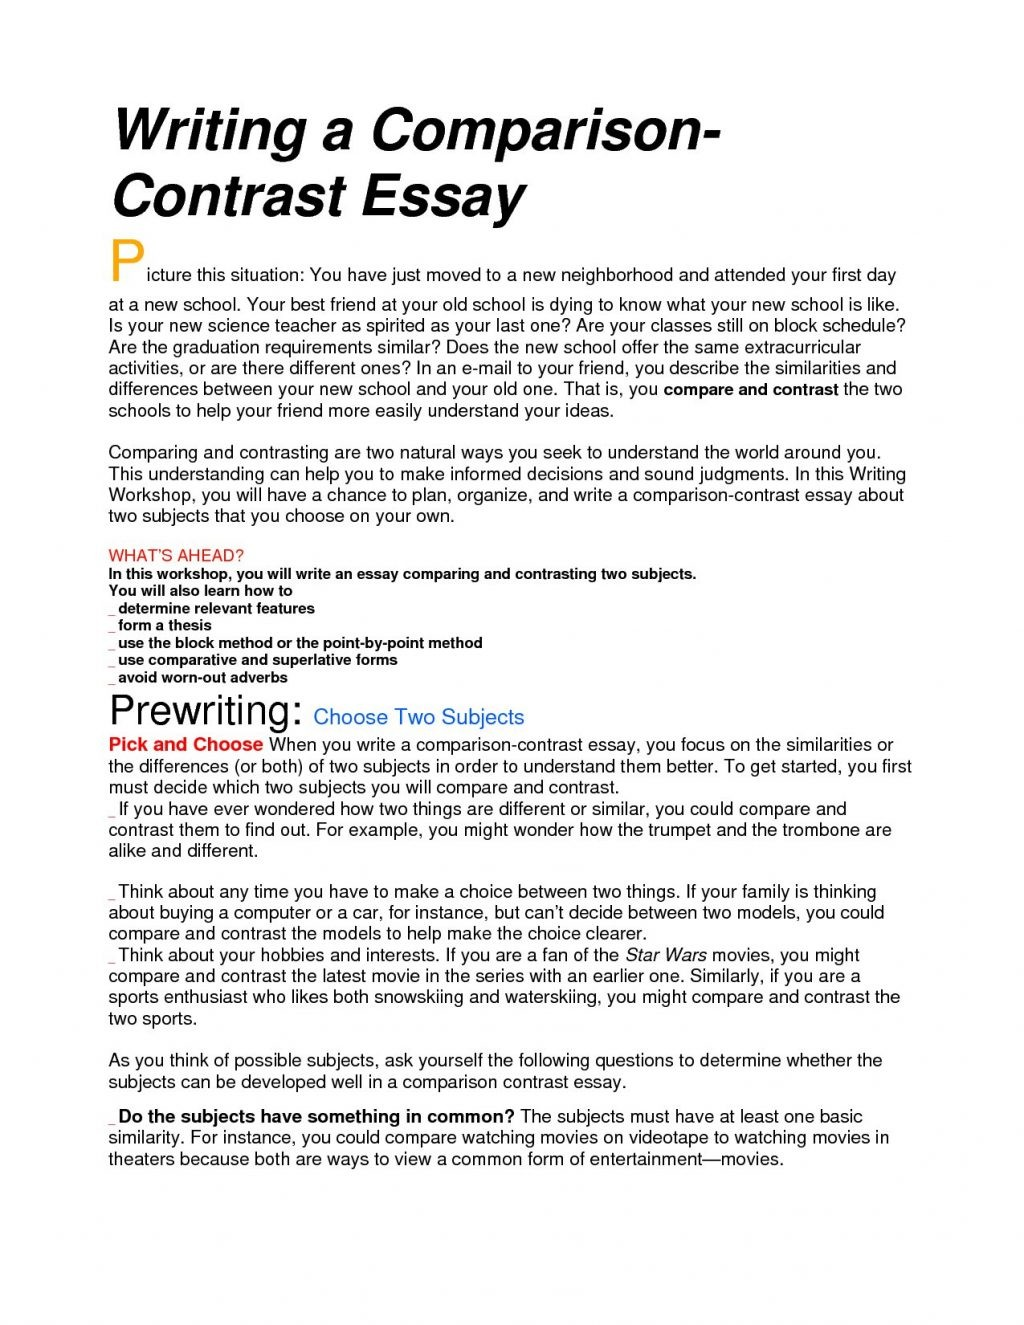 017 Good Compare And Contrast Essay Topics Sythesis Of Nanopolymeric Cheapsis Statement Proofreading For High Schoolents Photo Comparison Essays Esl How To Teach Exceptional Elementary Students In The Medical Field Large